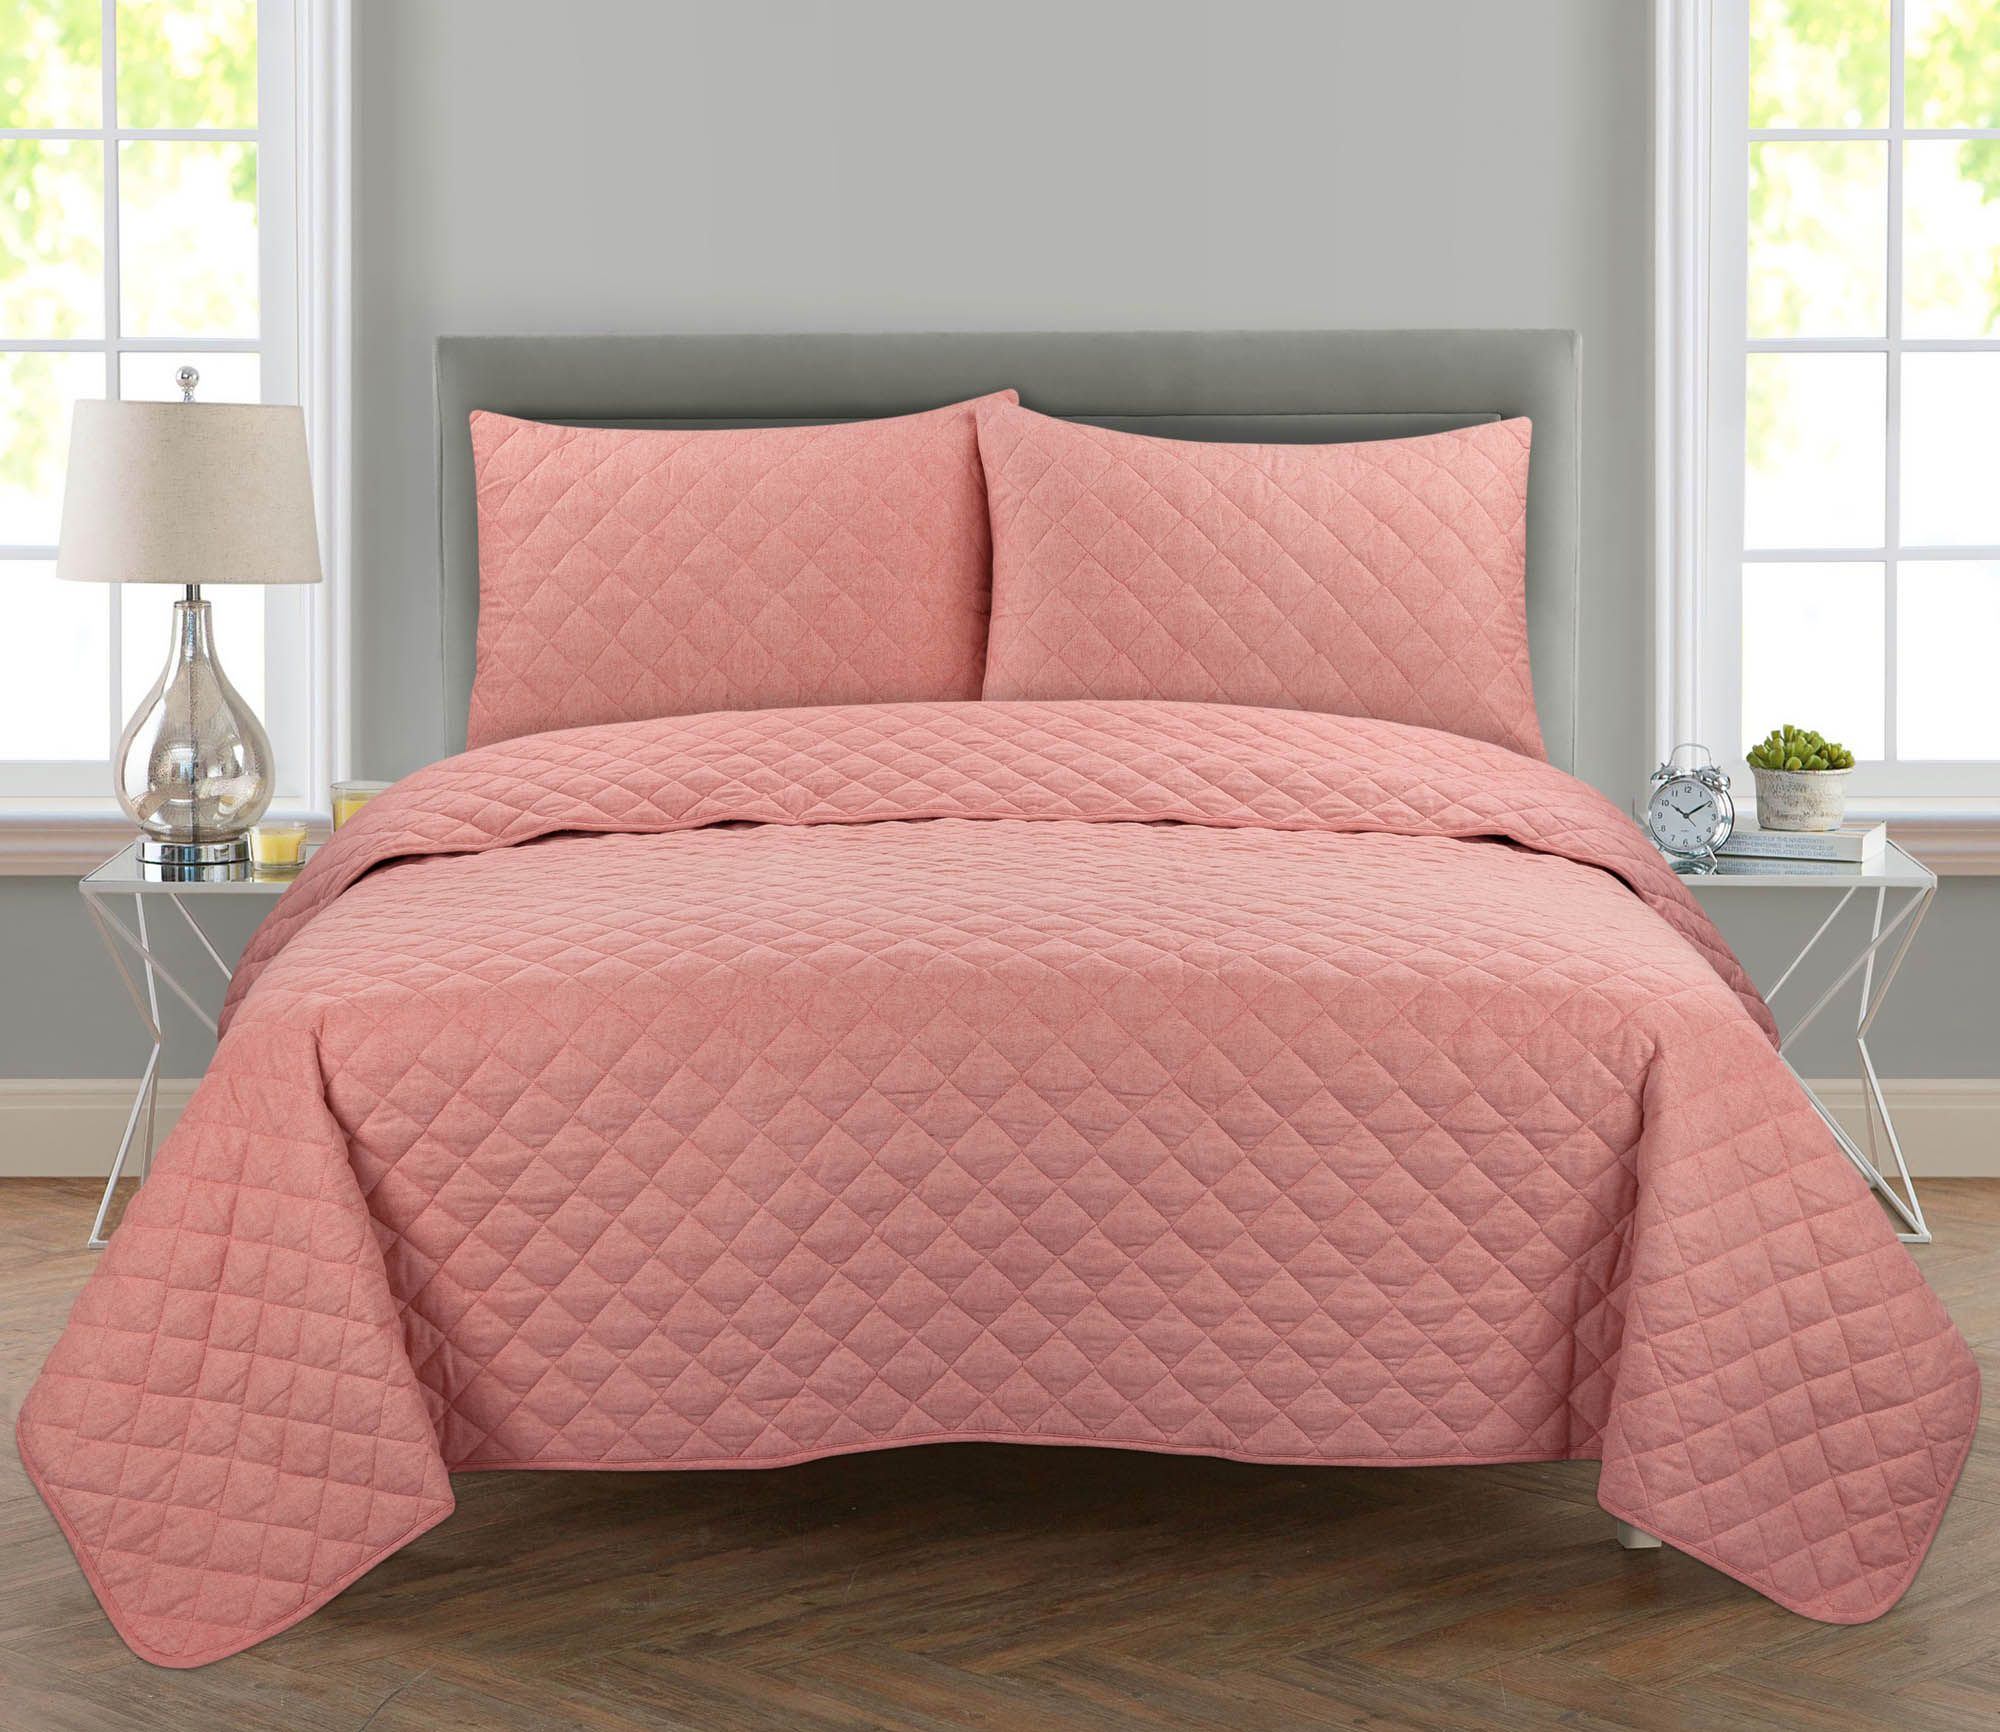 Mainstays Lightweight Cotton 2 Piece Quilt Set Twin Twin Xl Pink Walmart Com In 2020 Quilt Sets Pink Quilts Bedroom Colors